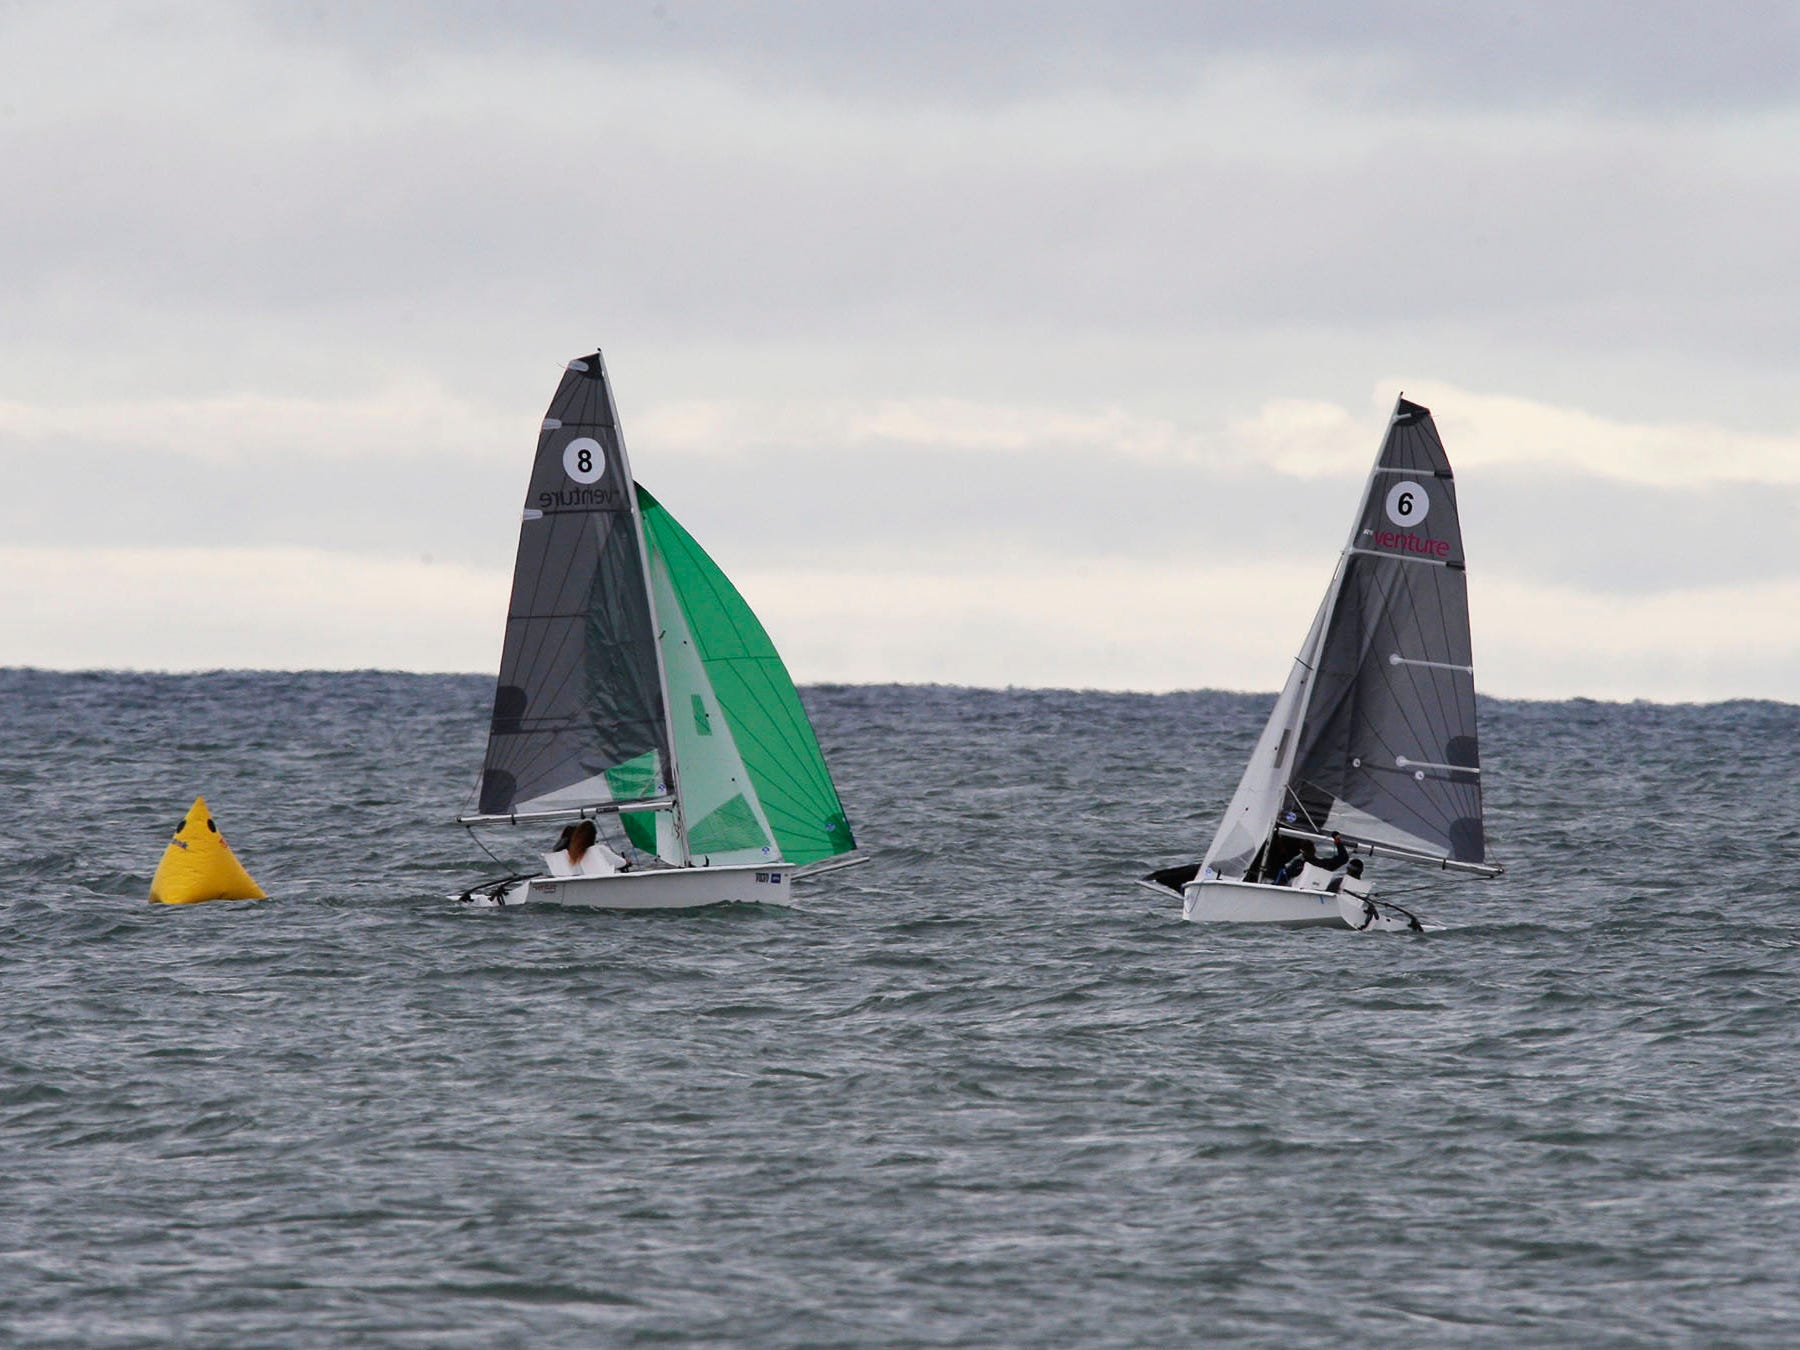 RS Ventures boats compete during the Para World Sailing Championships, Tuesday, September 18, 2018, in Sheboygan, Wis.